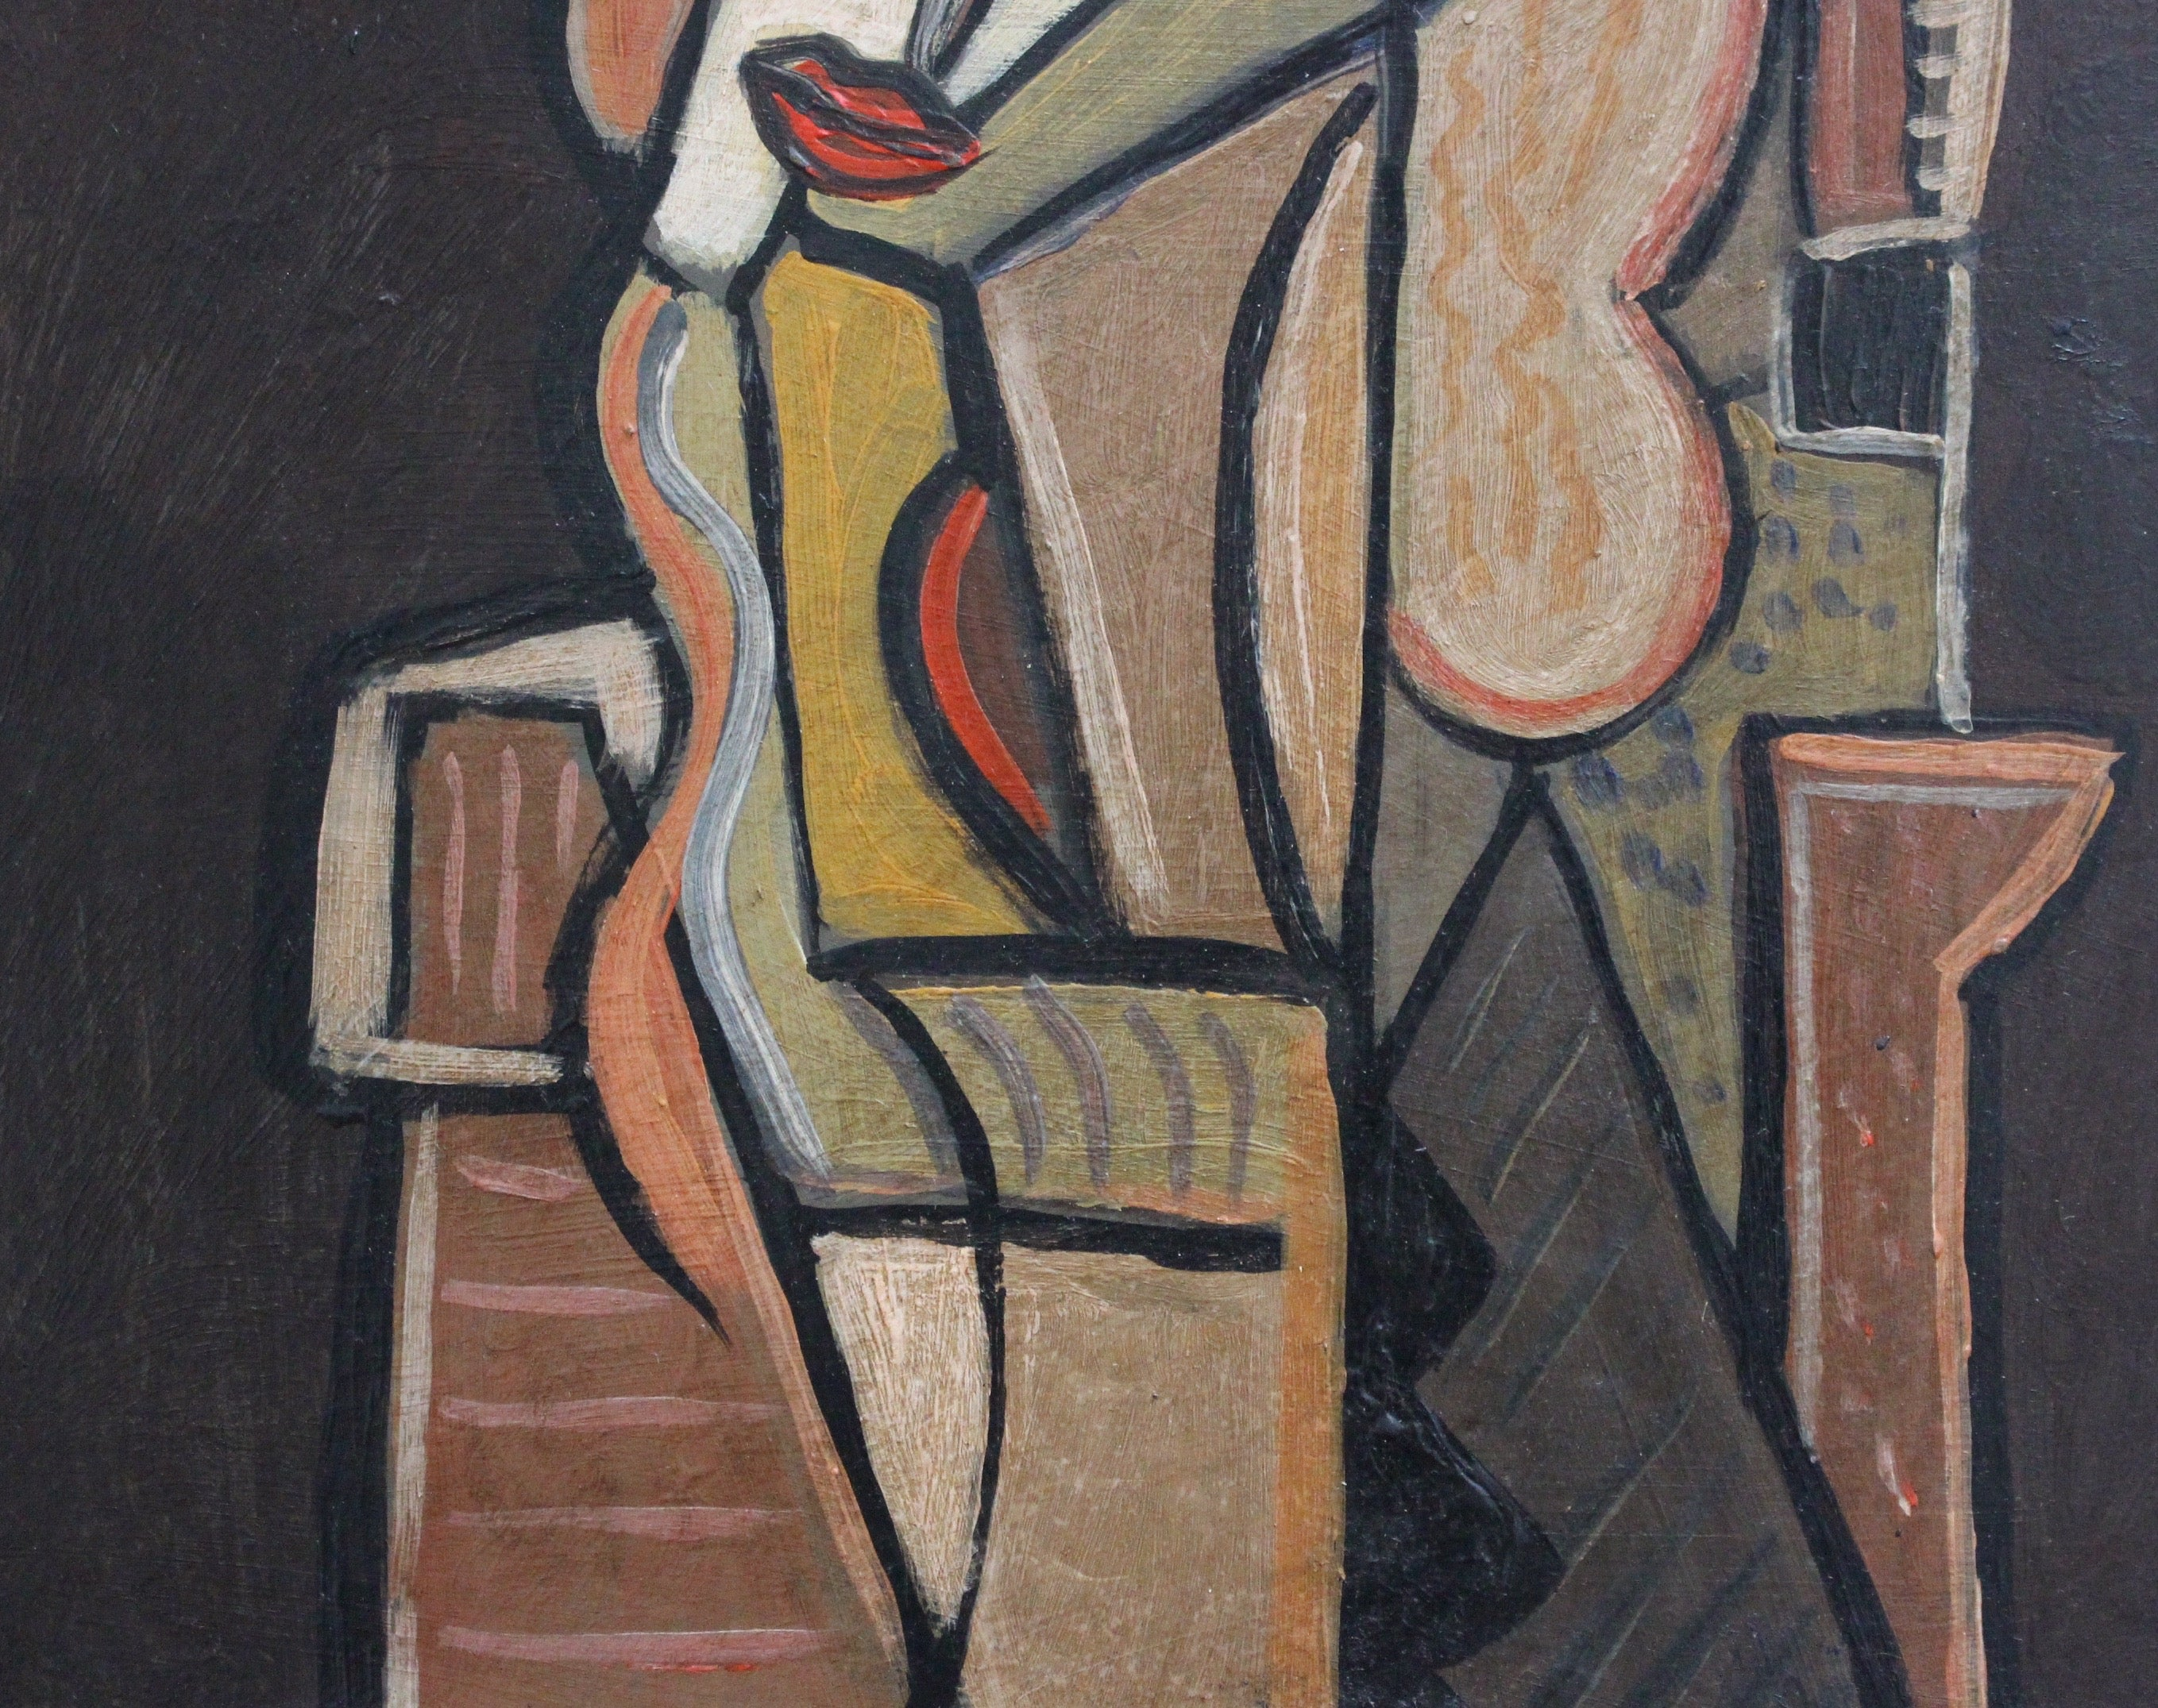 'The Opera Singer' by Unknown Artist (circa 1940s - 1960s)